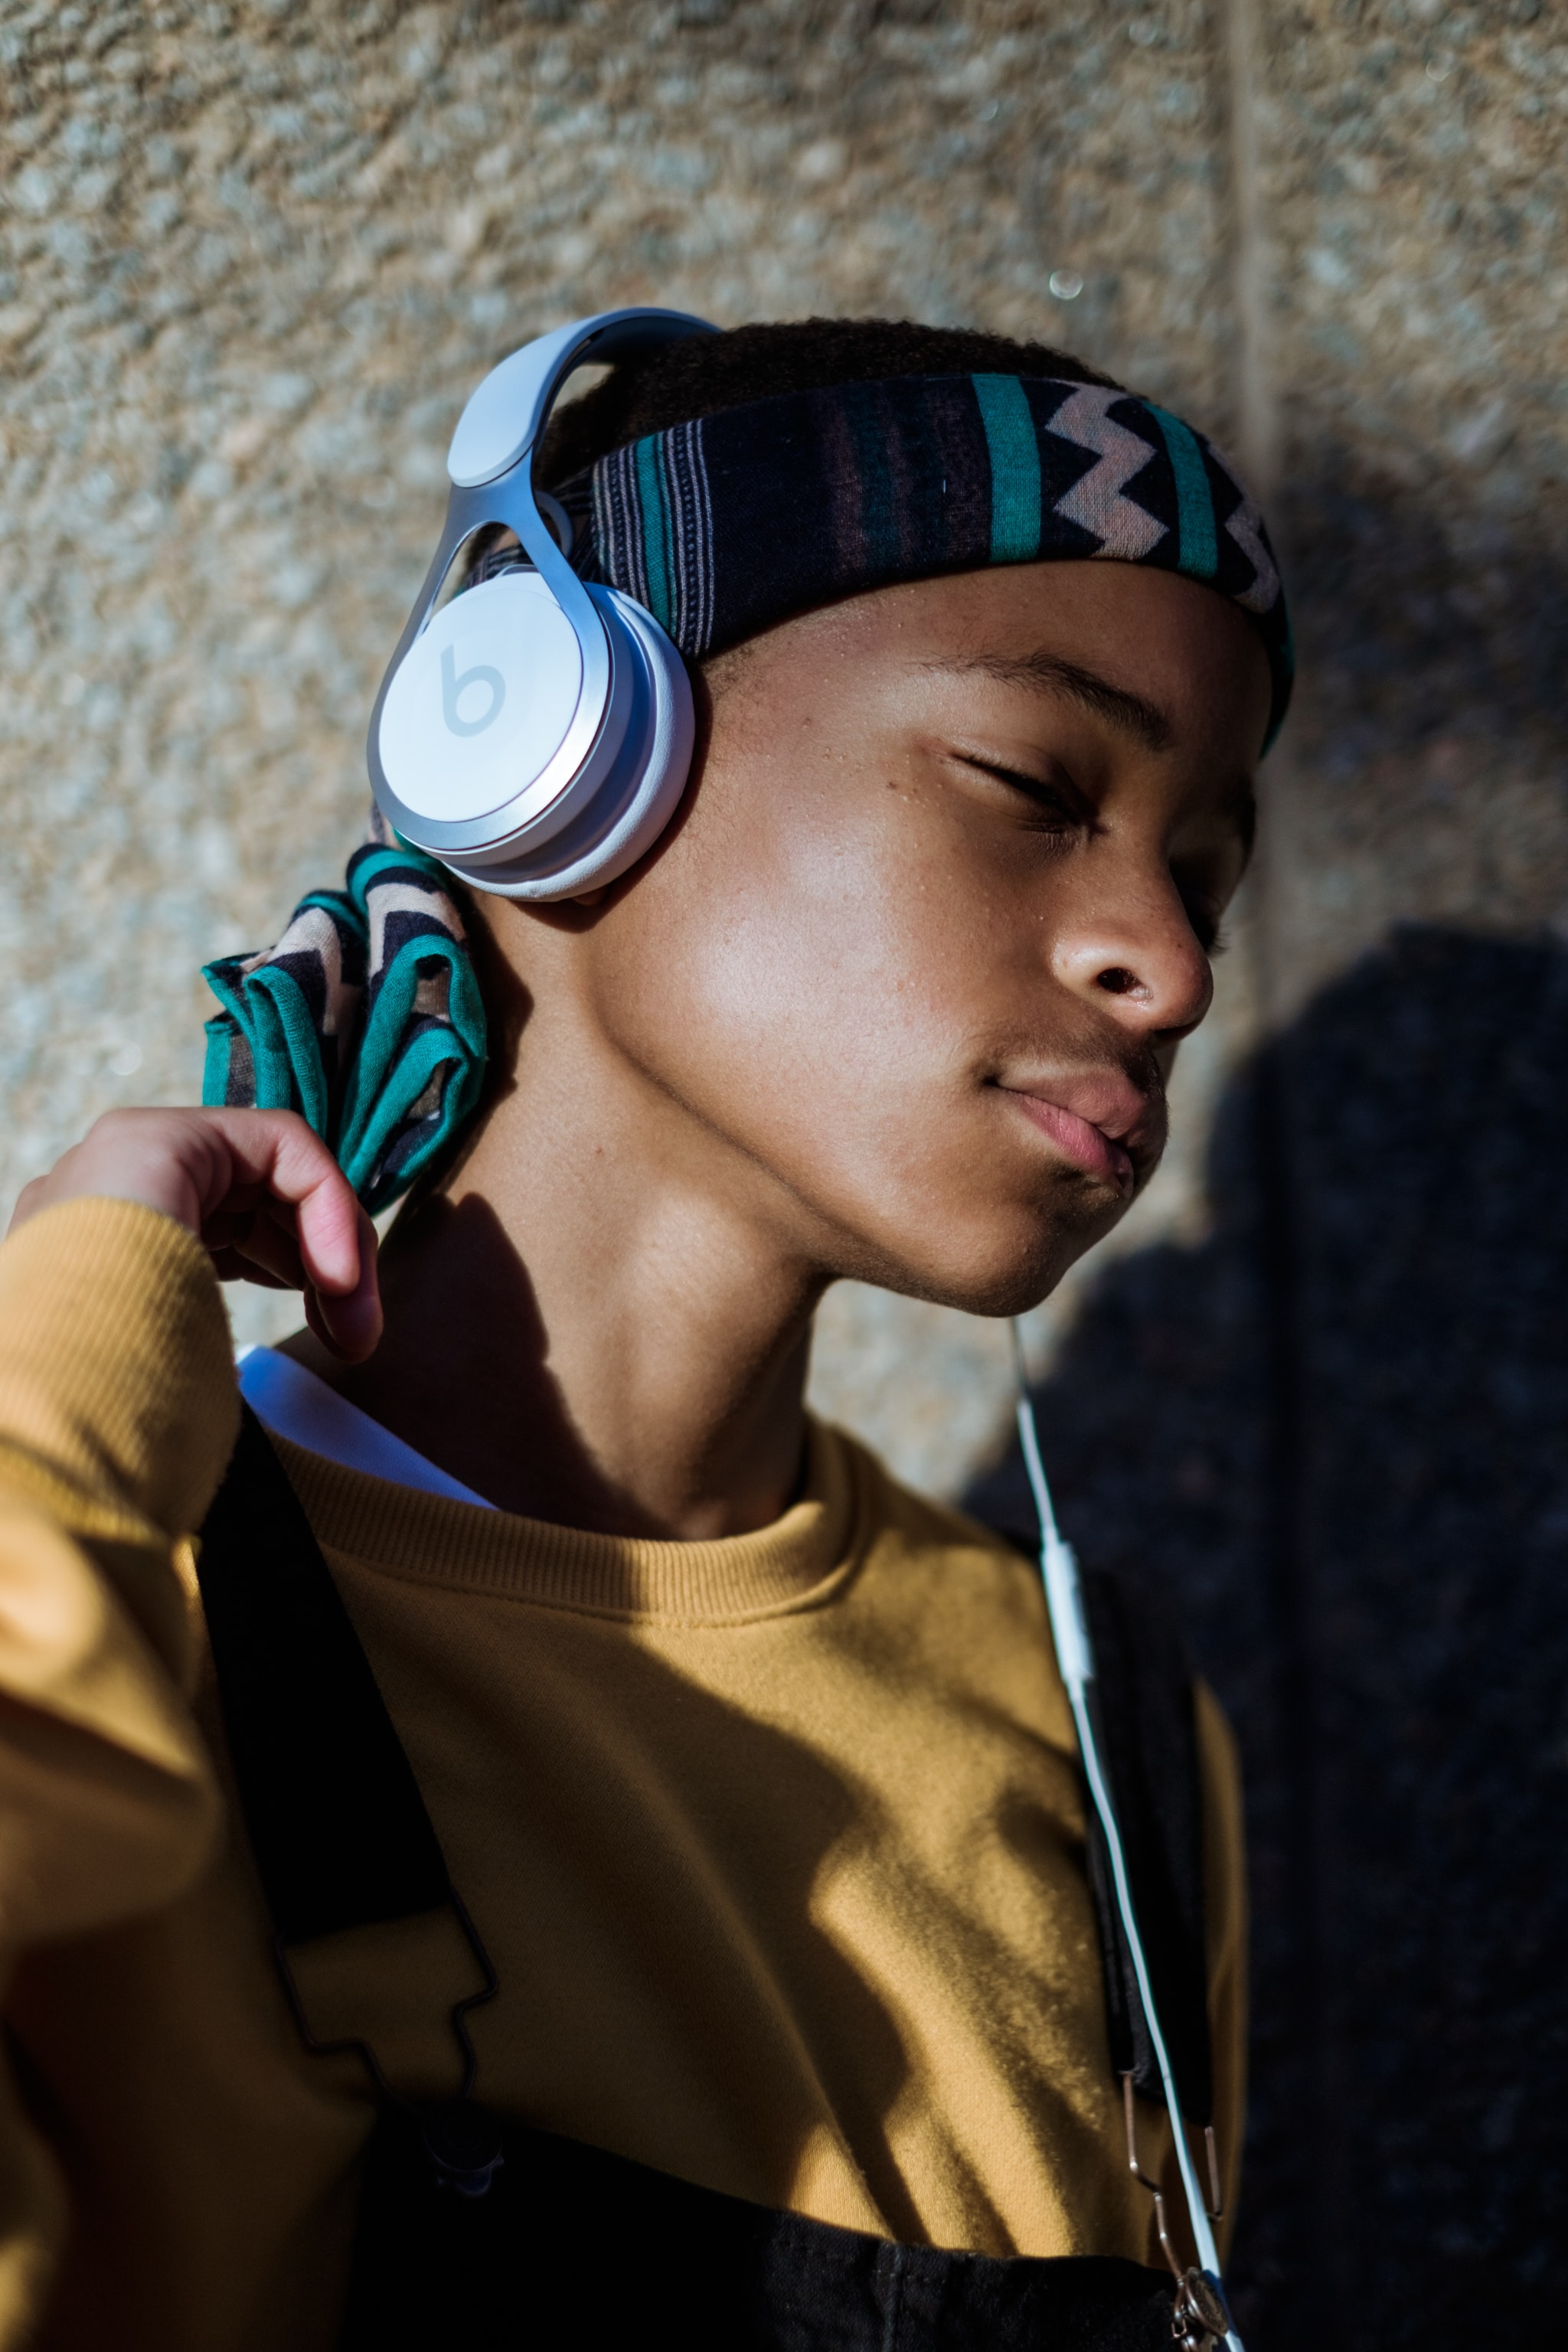 A person in a headwrap listens to music on white Beats by Dre headphones